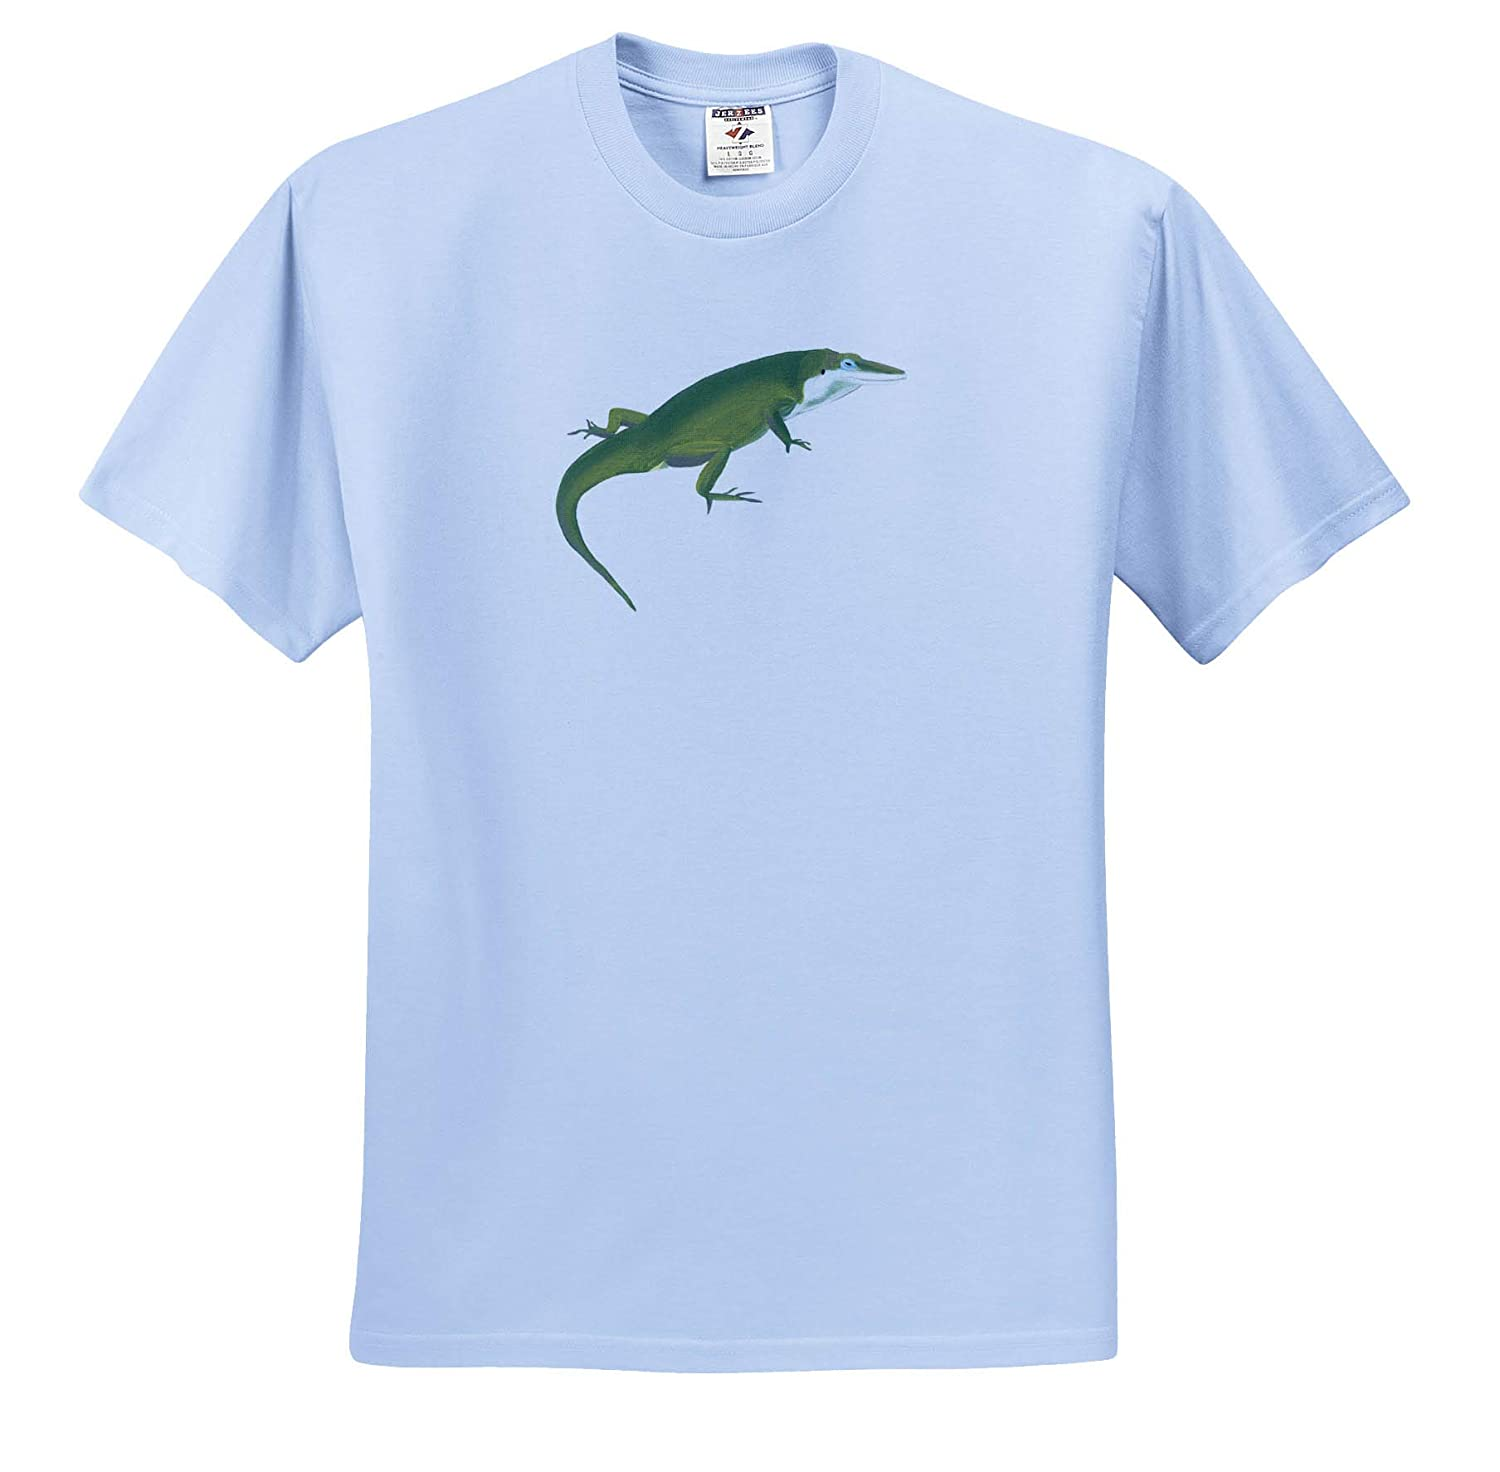 ts/_311417 3dRose CherylsArt Wild Animals Lizard Painting of a Crawling Green Lizard Adult T-Shirt XL